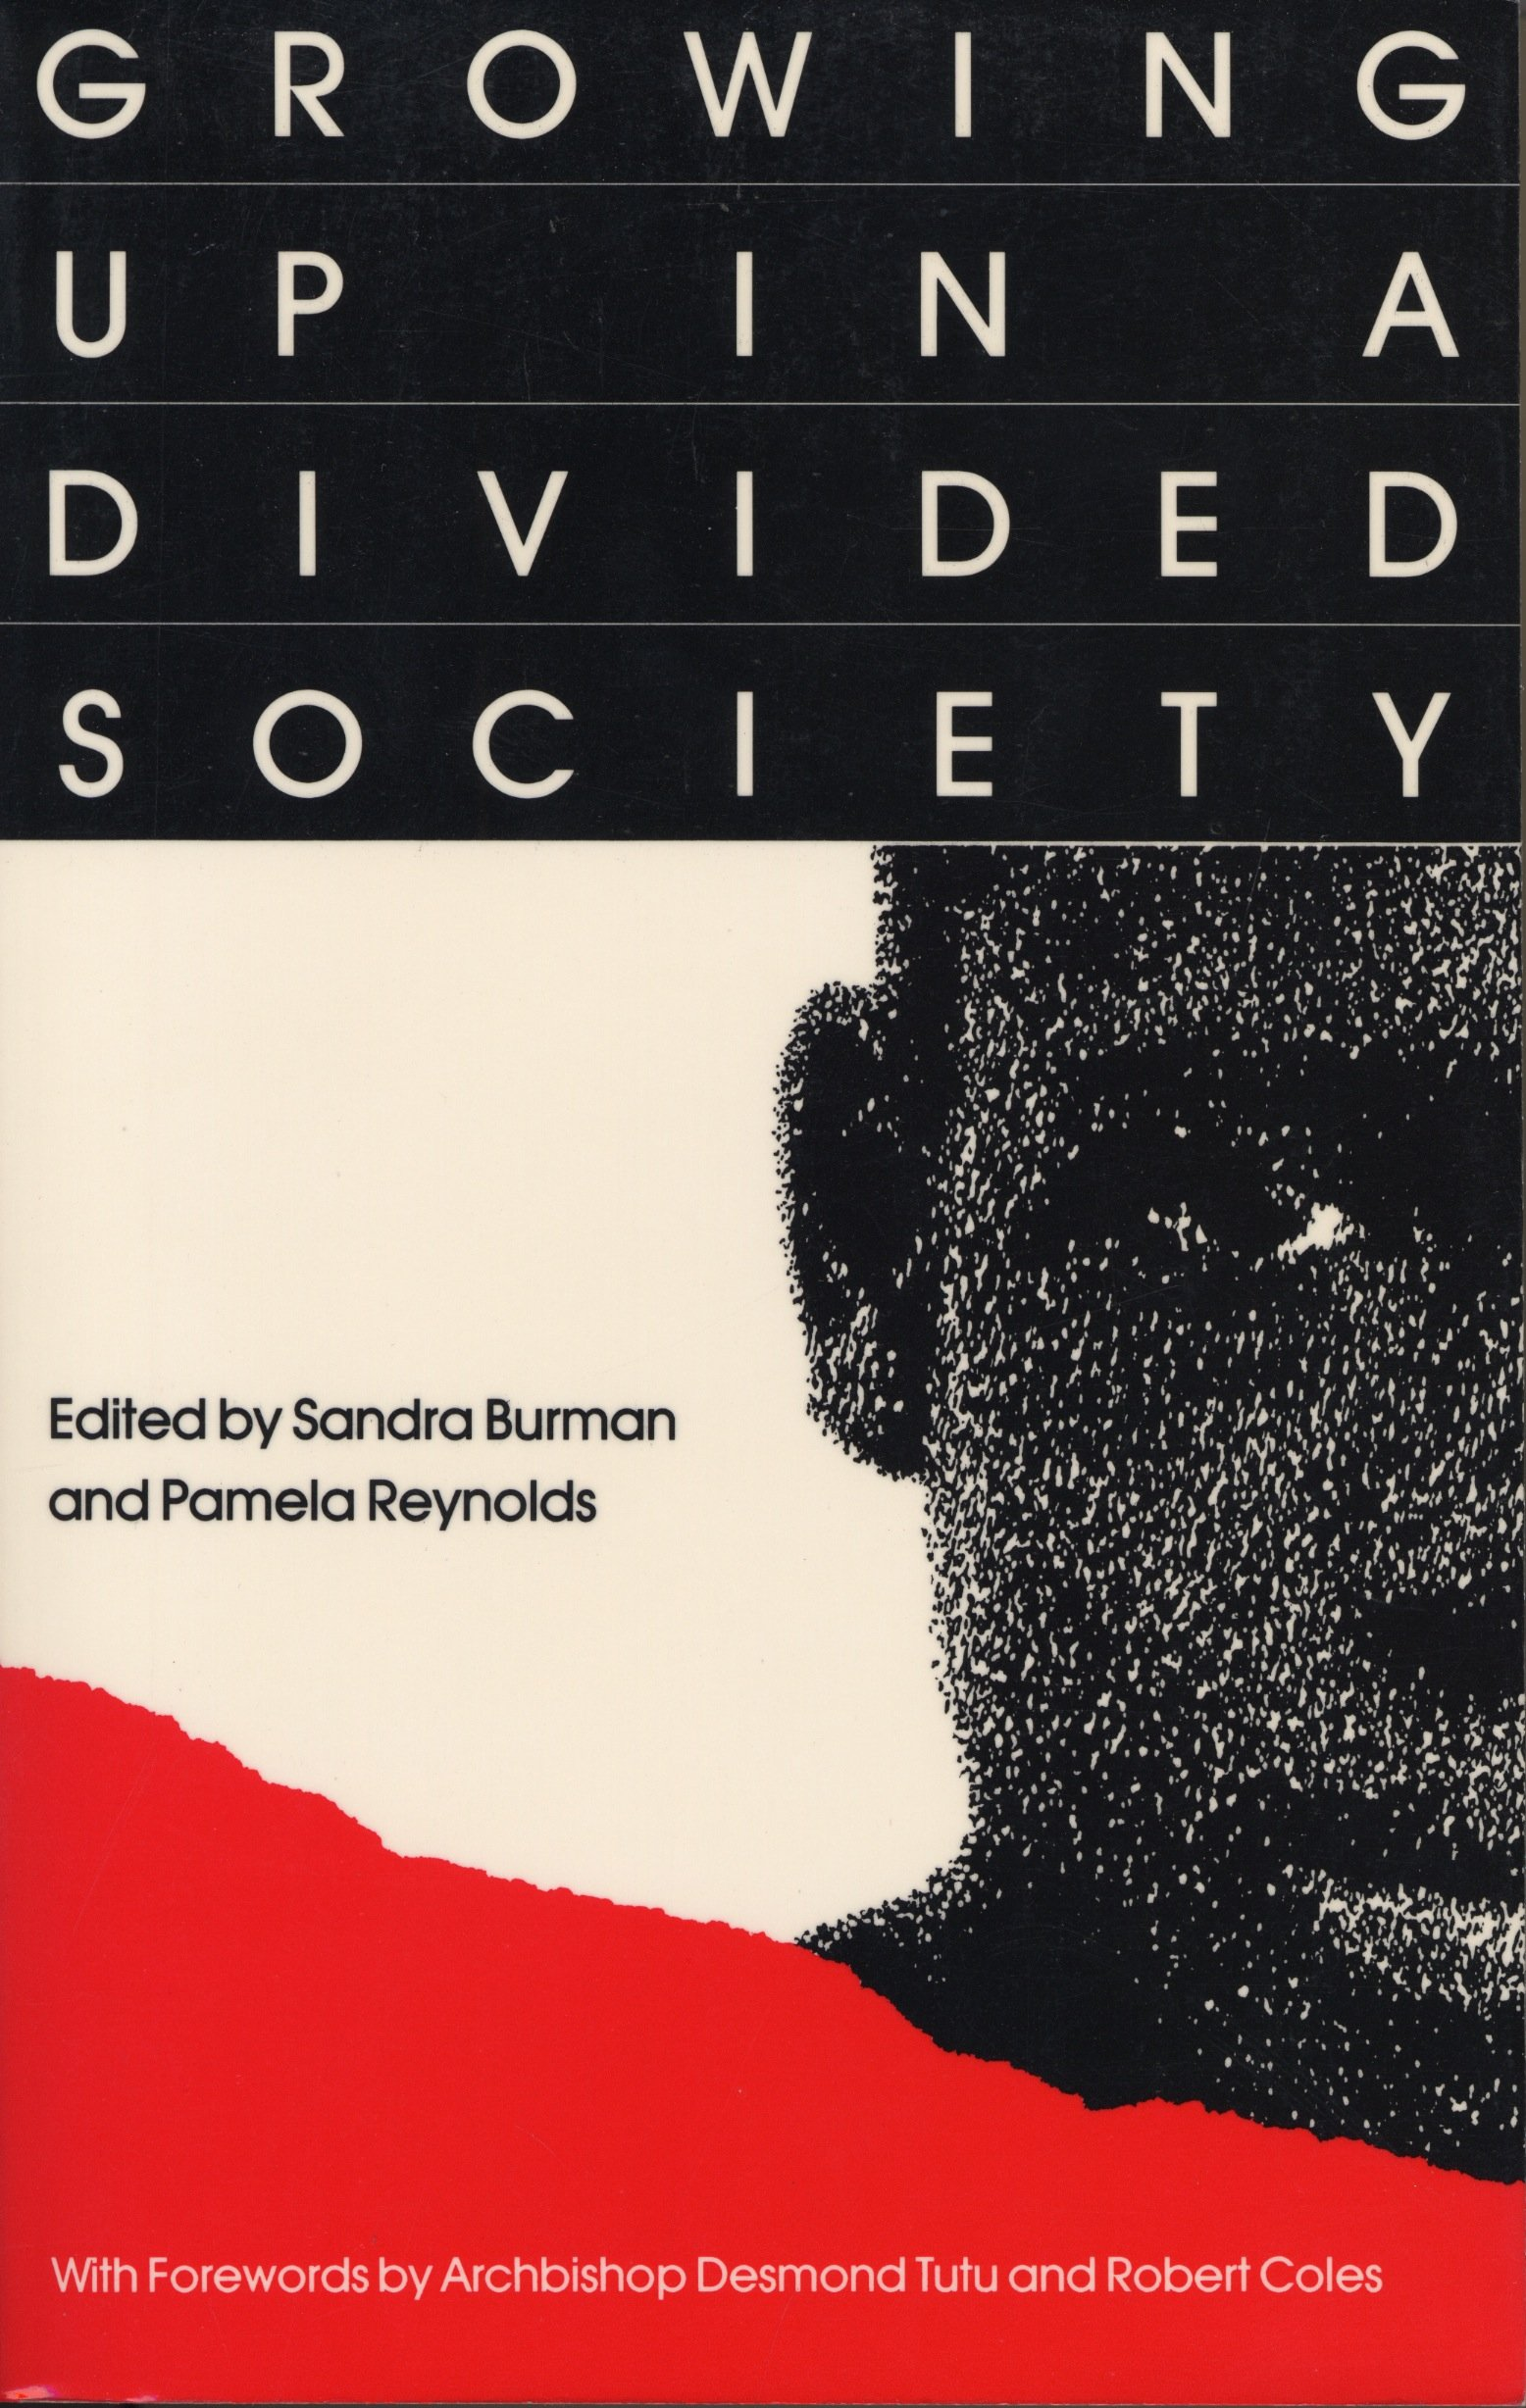 Growing Up In a Divided Society: The Contexts of Childhood in South Africa (1986)